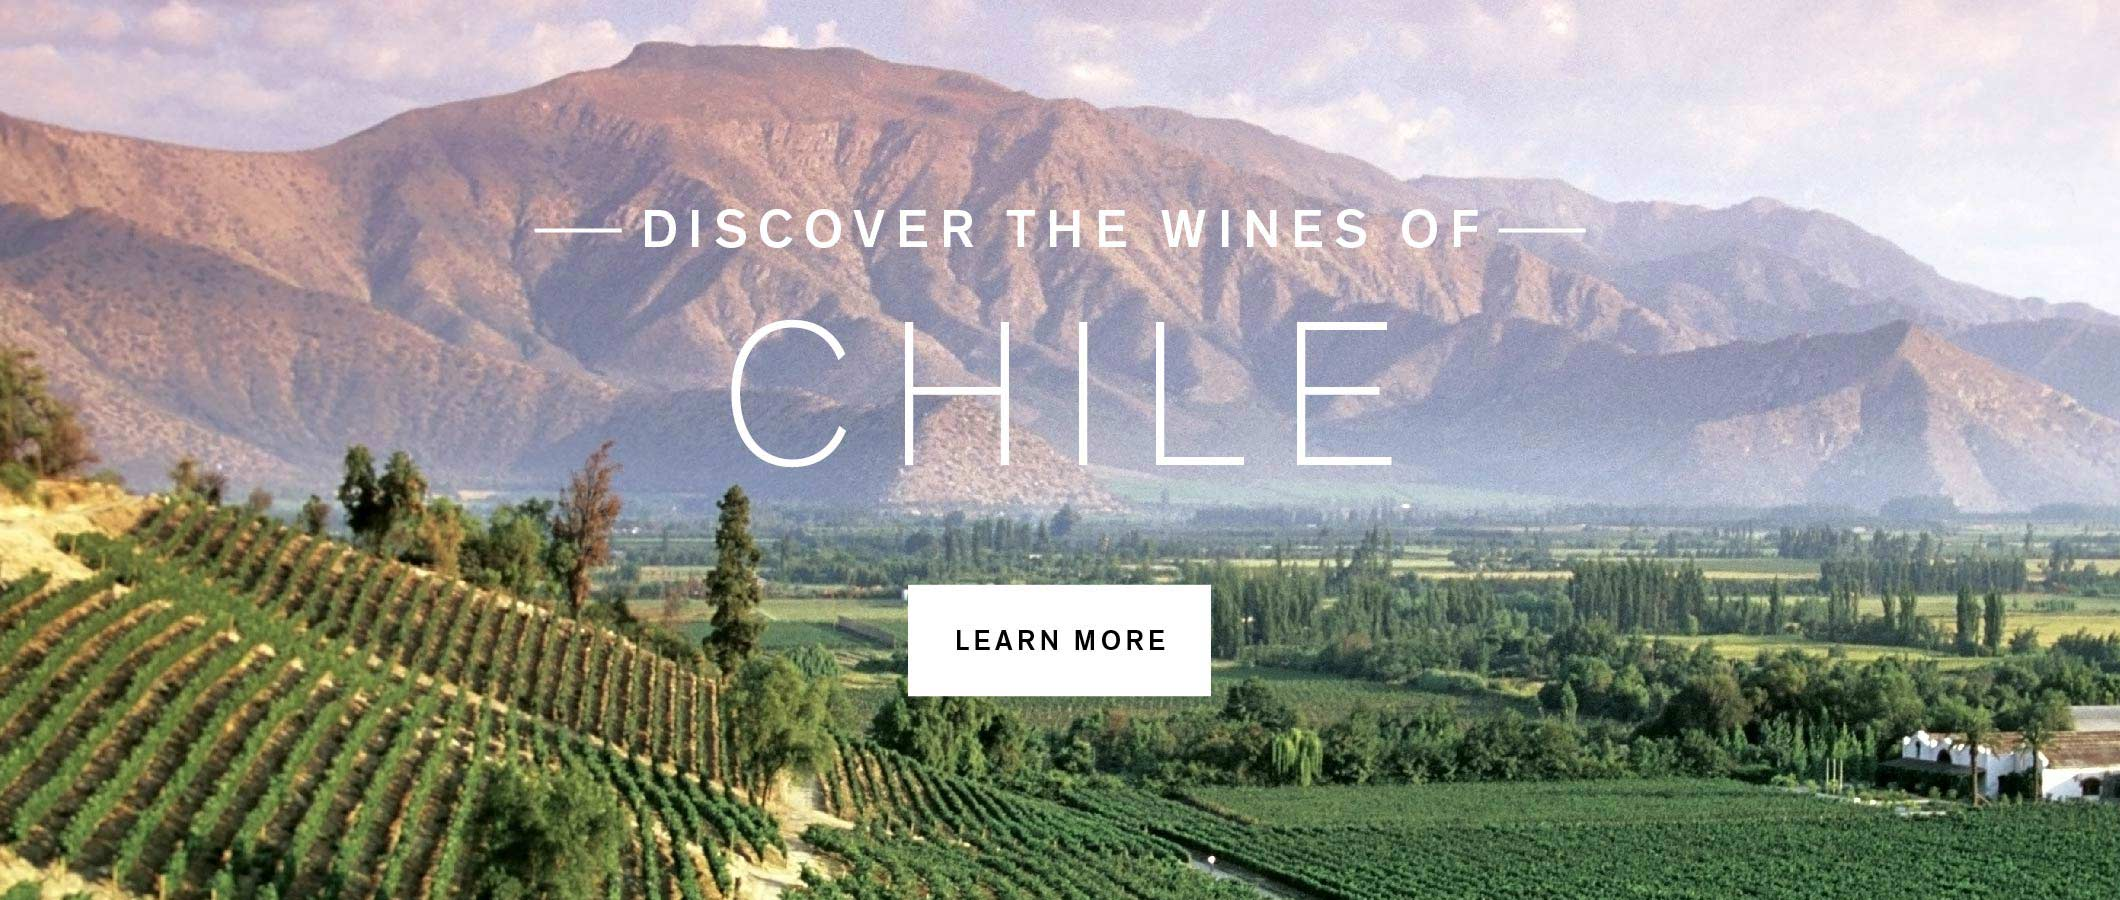 Discover our Enhanced Selection of Products from Chile. Explore Now